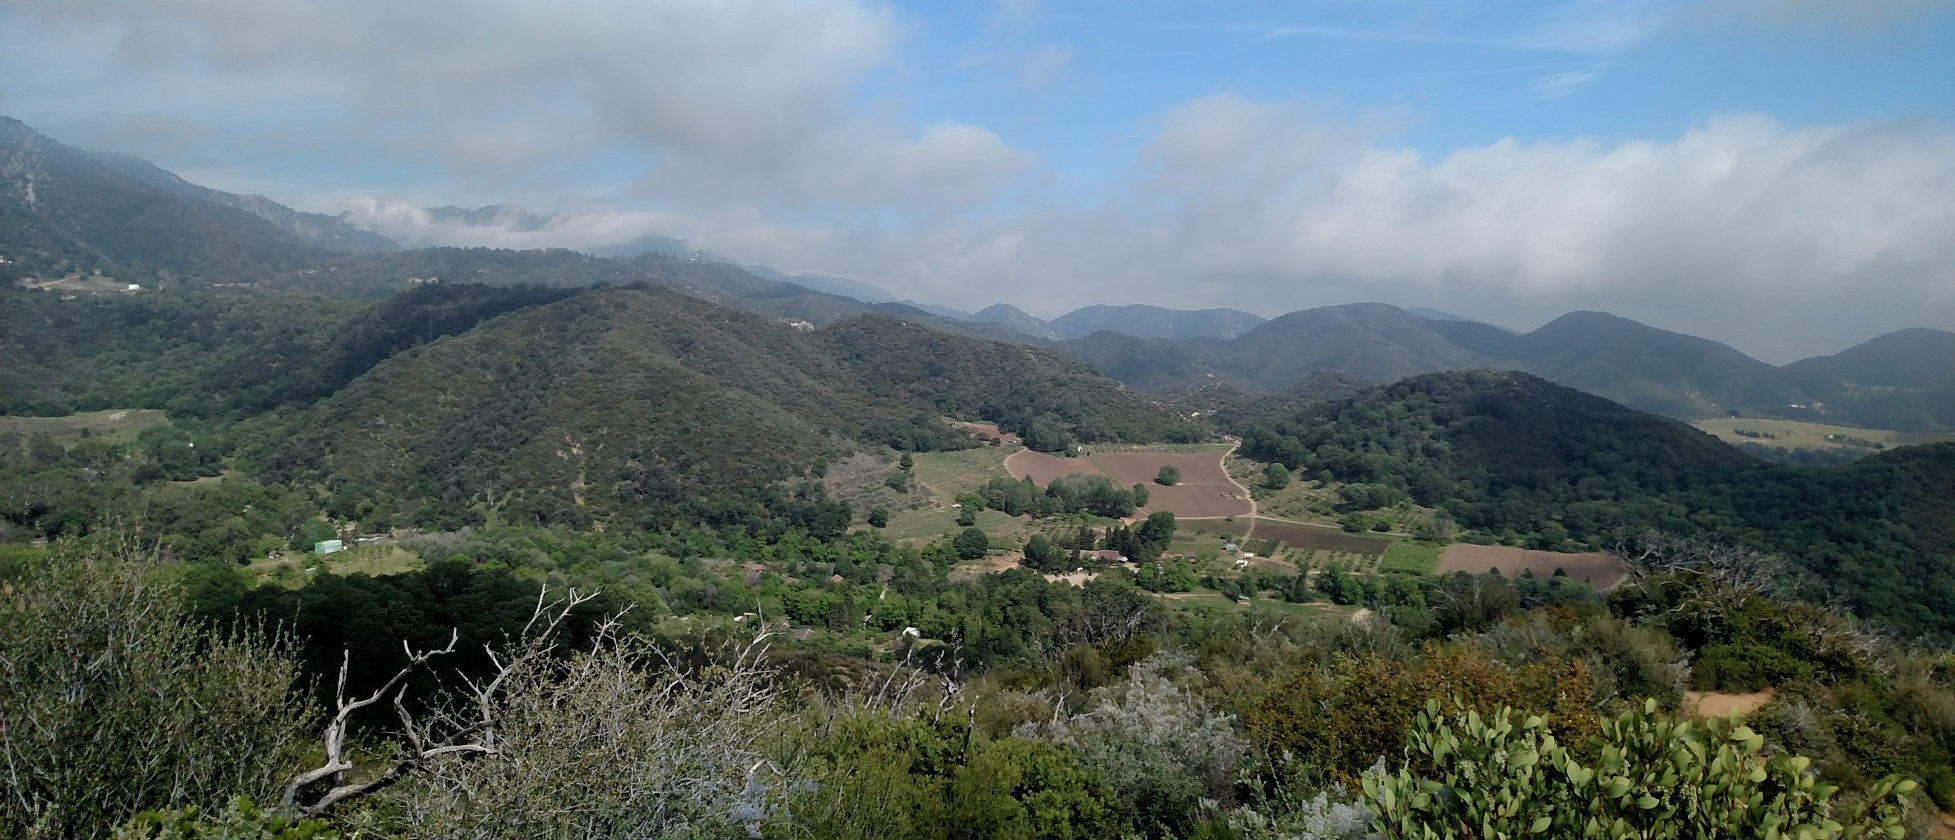 Oak Glen Preserve, Oak Glen, CA